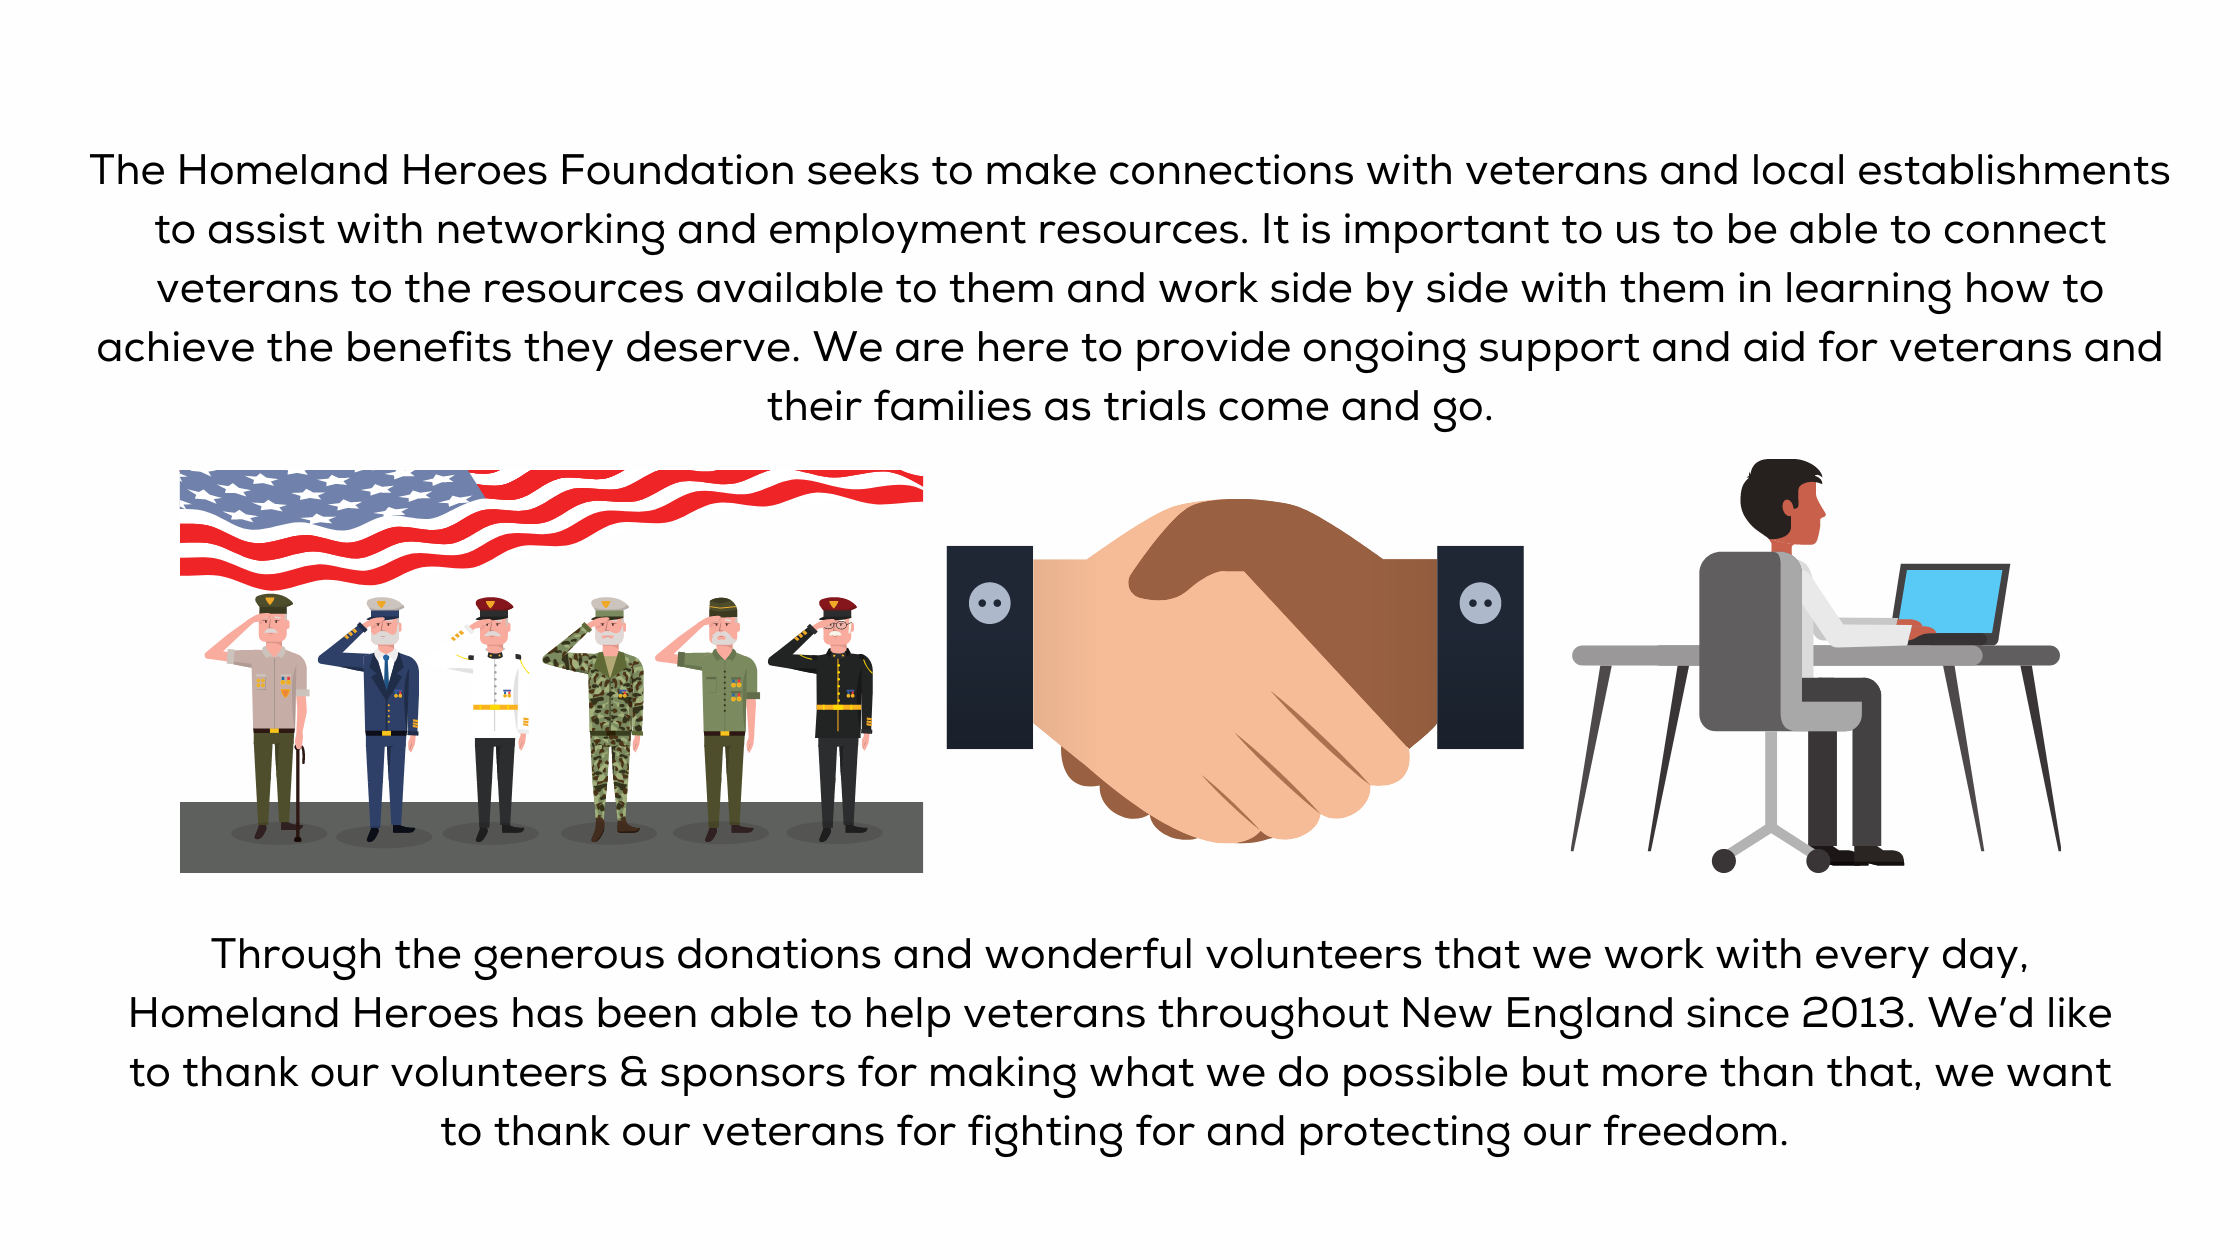 The Homeland Heroes foundation seeks to make connections with veterans and local establishments to assist with networking and employment resources. It is important to us to be able to connect veterans to the resources available to them and work side by side with them in learning how to achieve the benefits they deserve. We are here to provide ongoing support and aid for veterans and their families as trials come and go. Through the generous donations and wonderful volunteers that we work with every day, Homeland Heroes has been able to help veterans throughout New England since 2013. We'd like to thank our volunteers & sponsors for making what we do possible but more than that, we want to thank our veterans for fighting for and protecting our freedom.